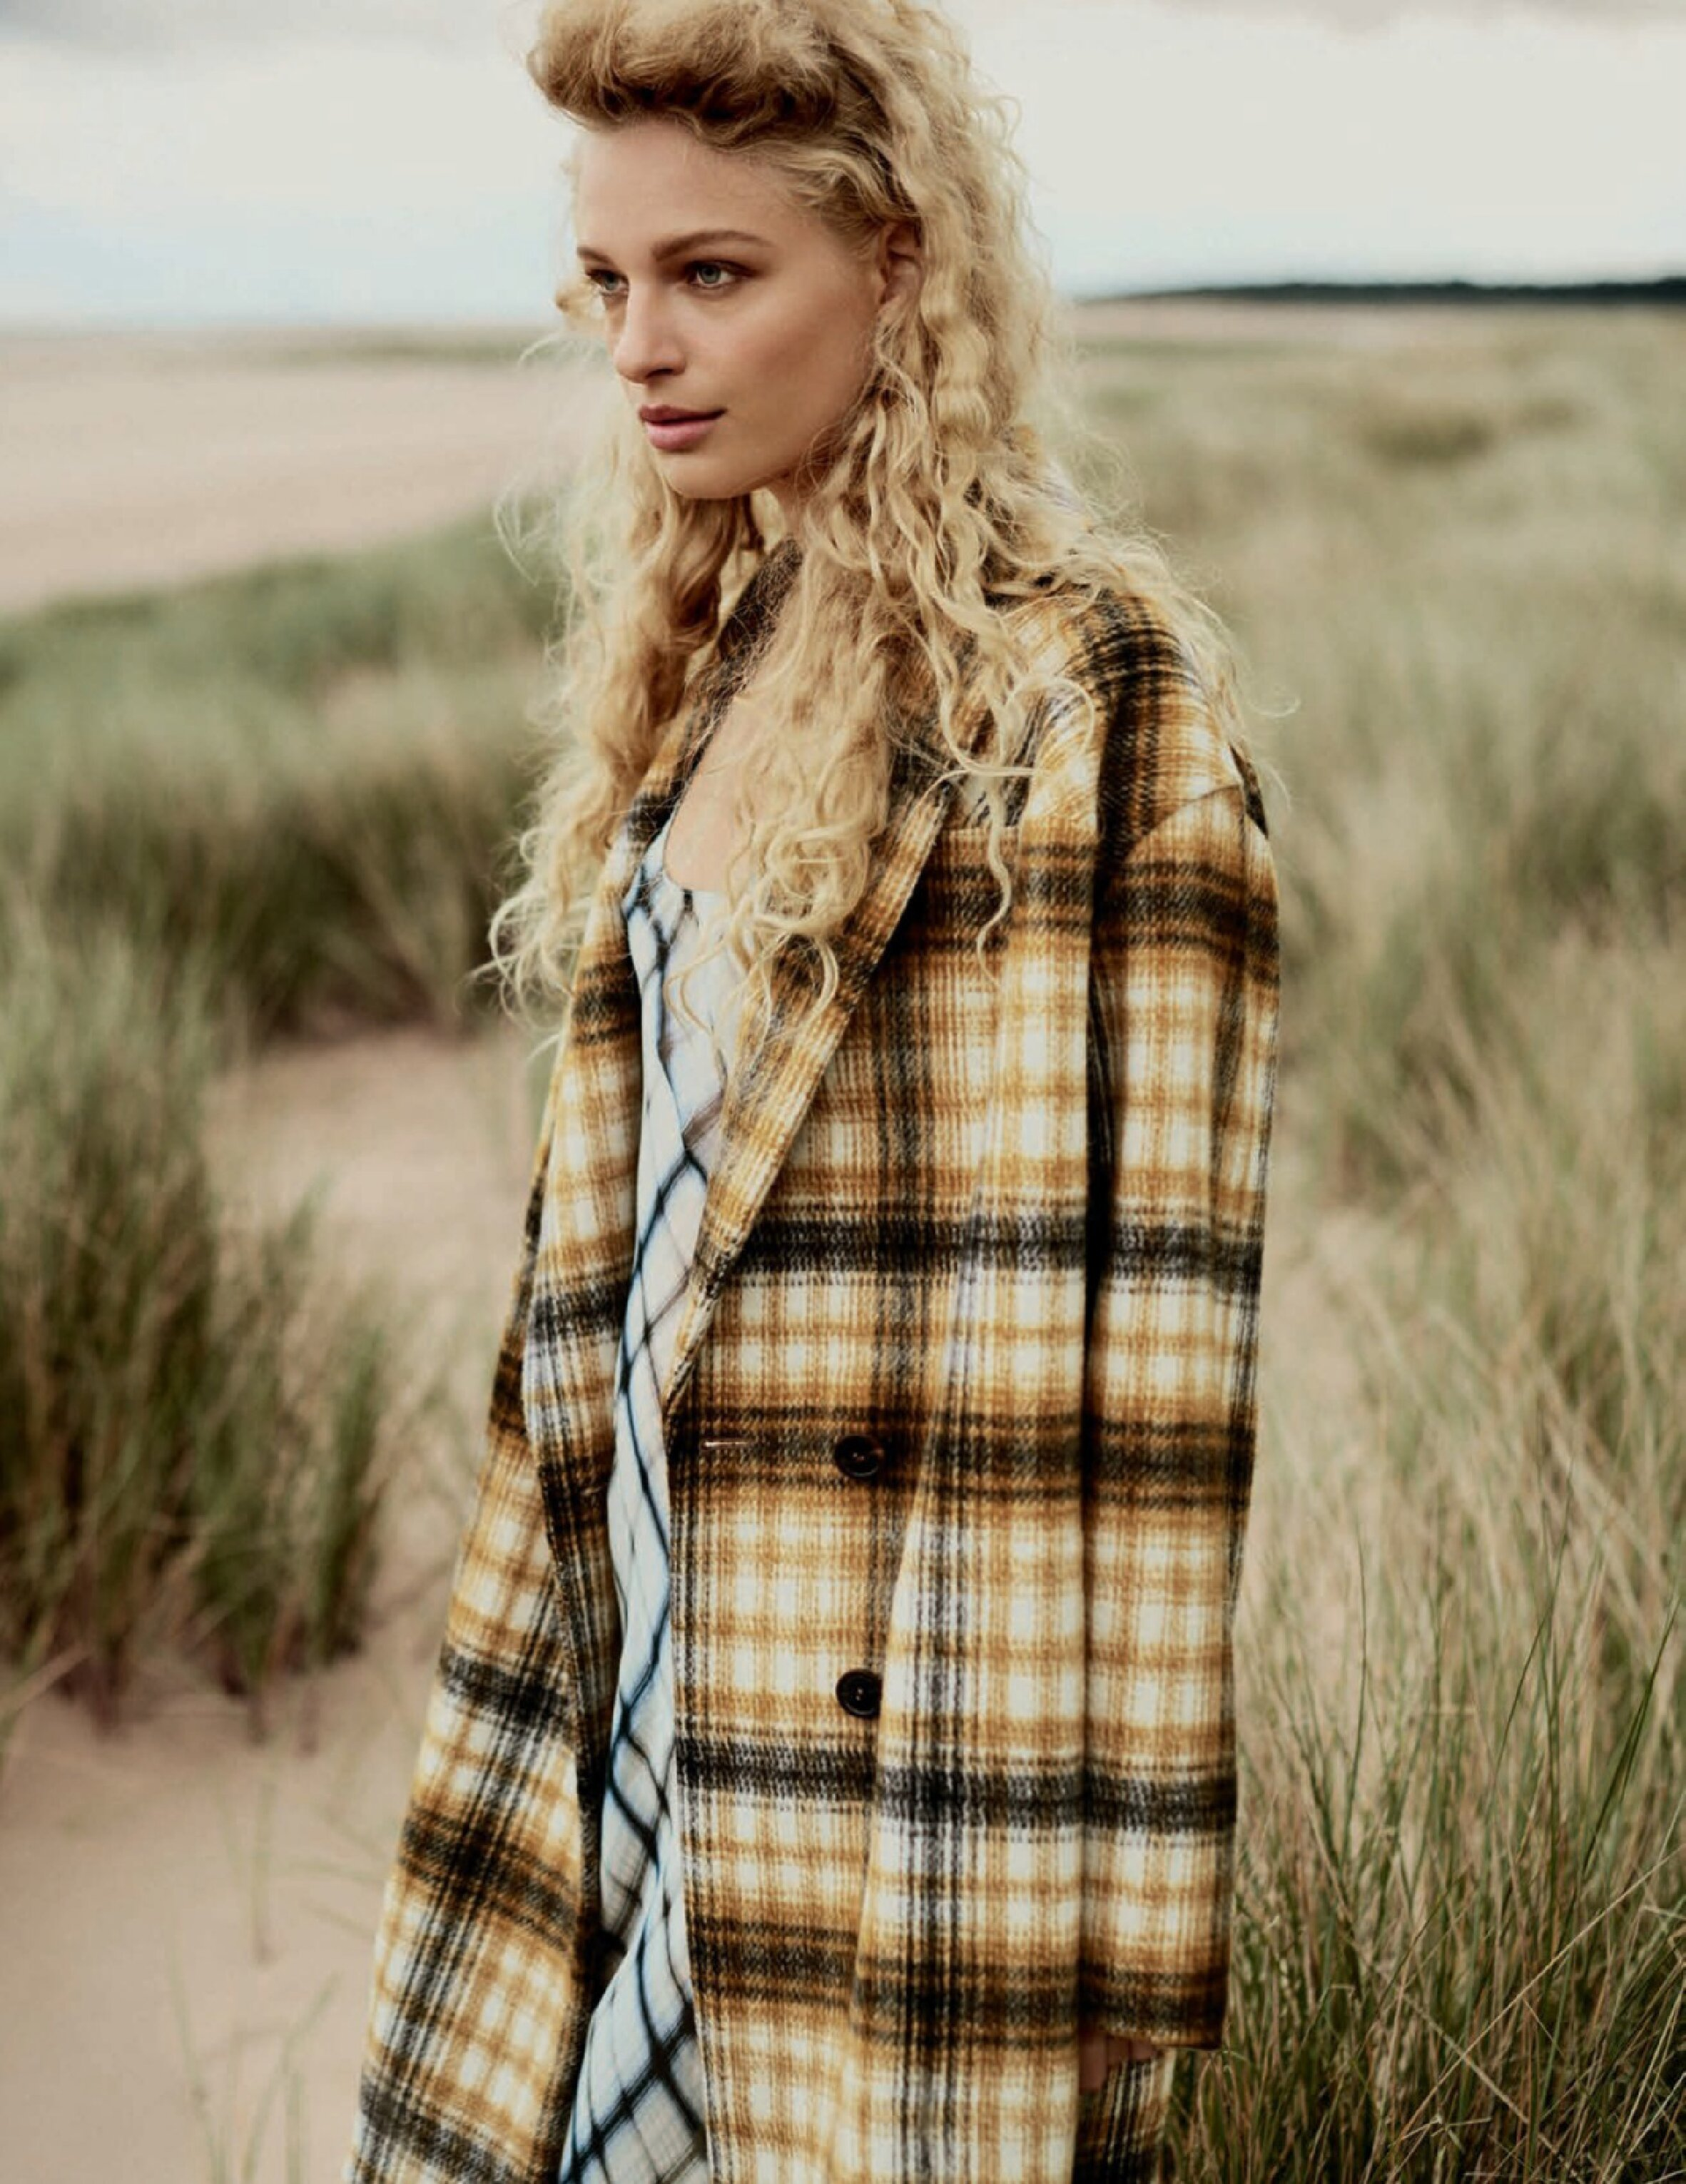 Frederike Sofie by Boo George for Vogue Spain Sept 2019 (7).jpg